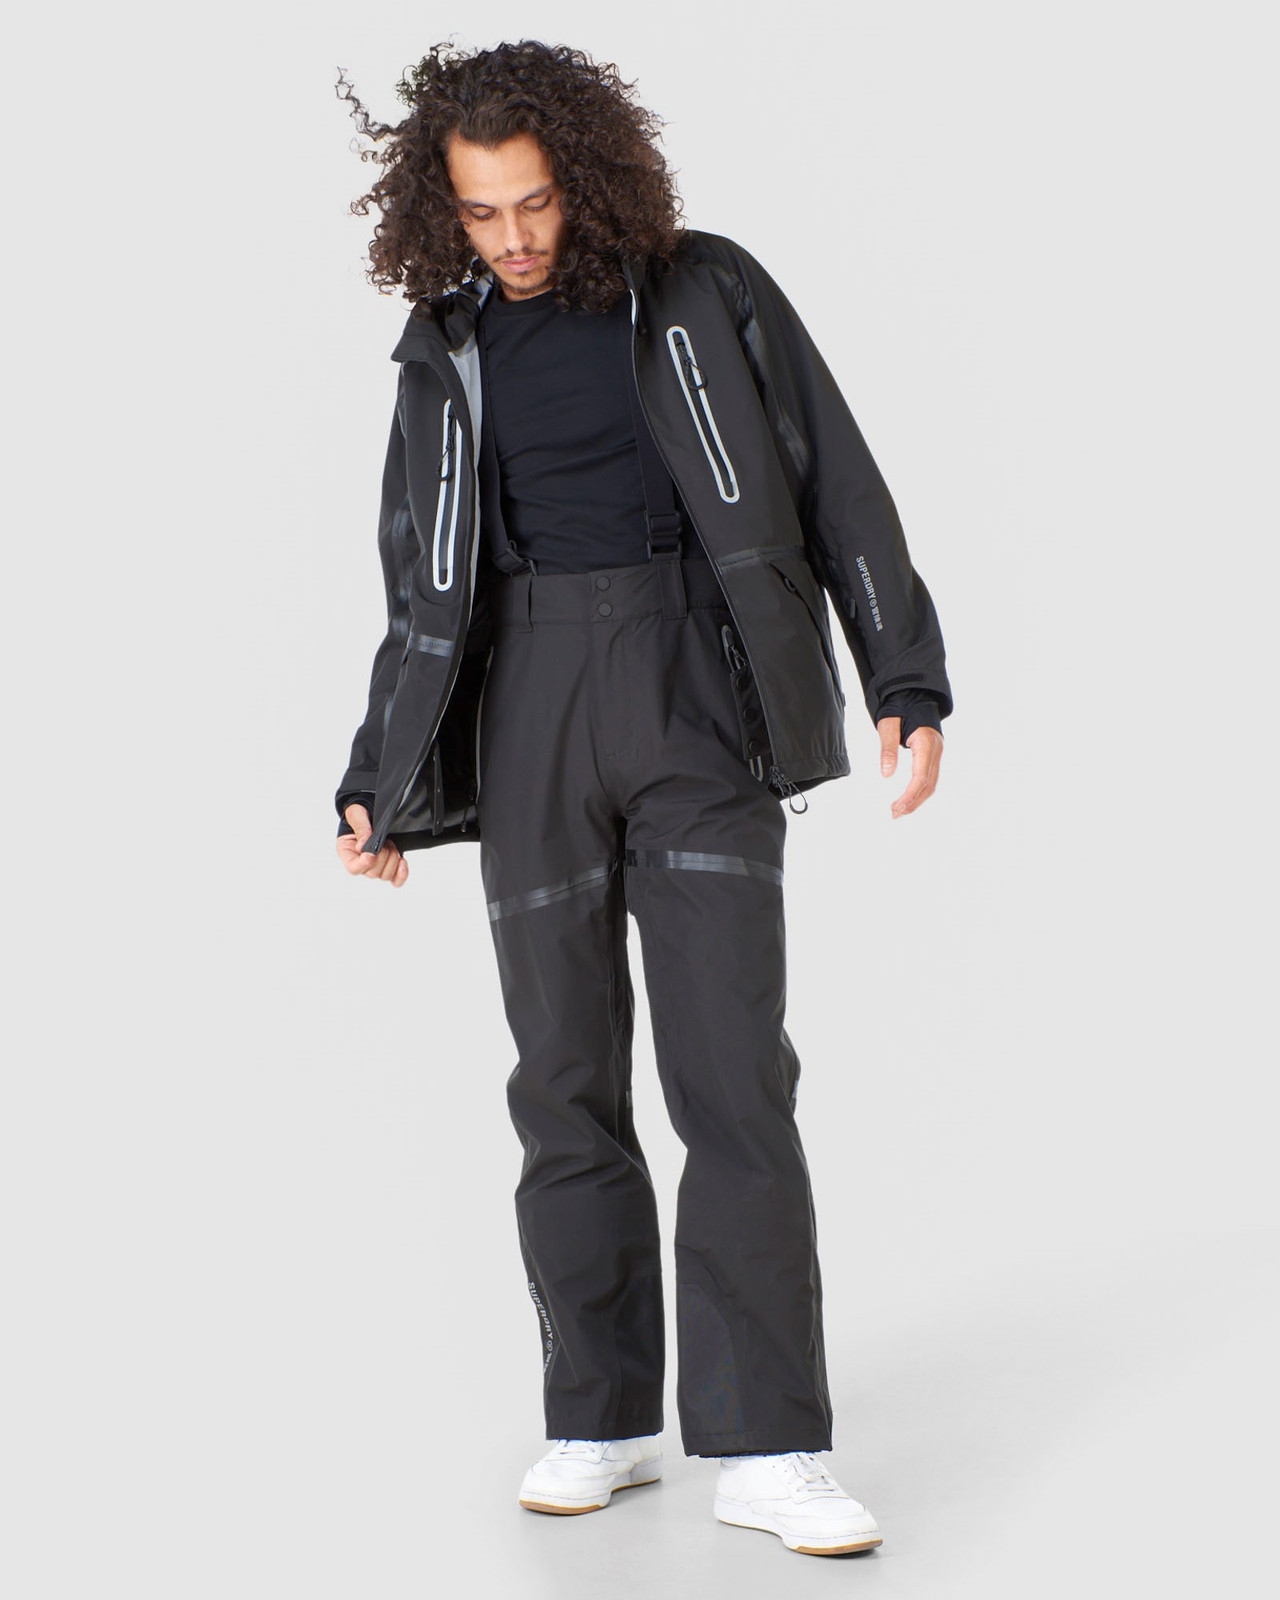 Superdry Mens EXPEDITION SHELL JACKET Black Snow Jackets 3